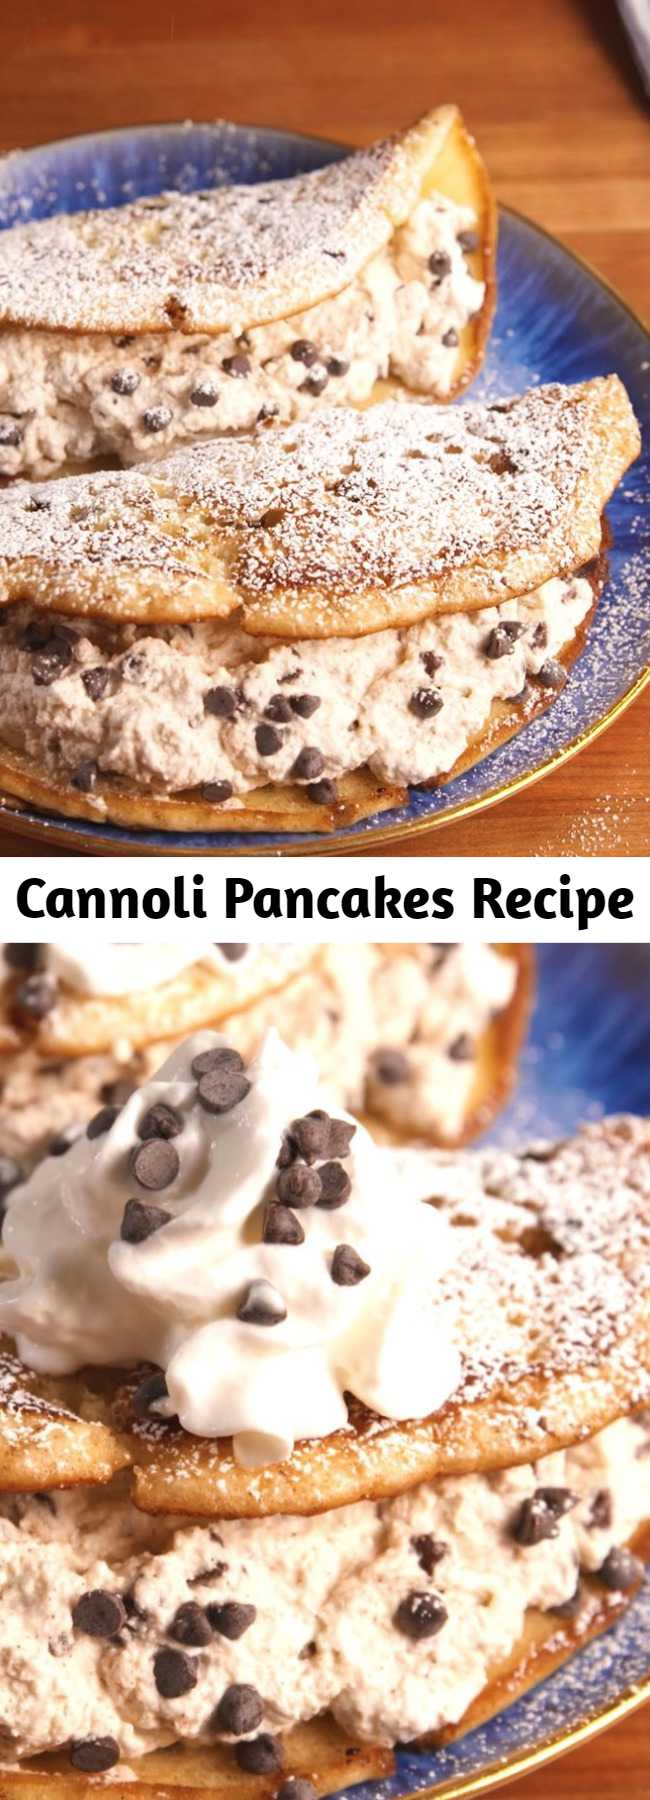 Cannoli Pancakes Recipe - This recipe is the key to getting your cannoli fix before 12 P.M. Dessert for breakfast >>> breakfast for dinner.